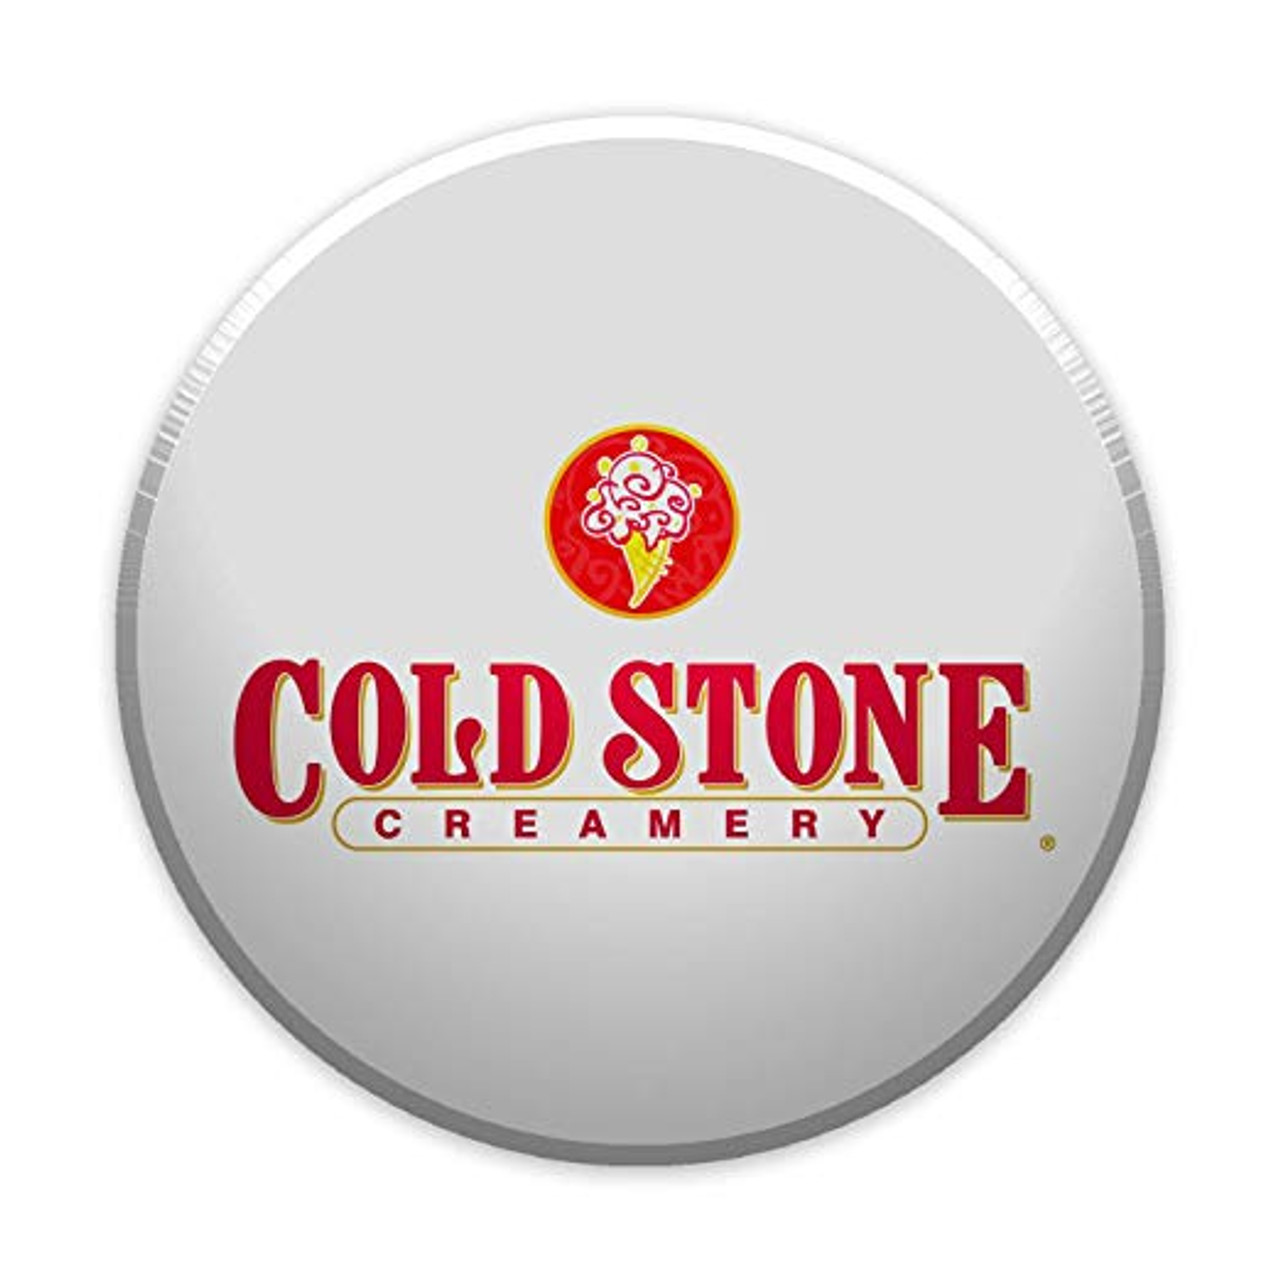 Pecan Praline Flavored Coffee by Cold Stone Creamery